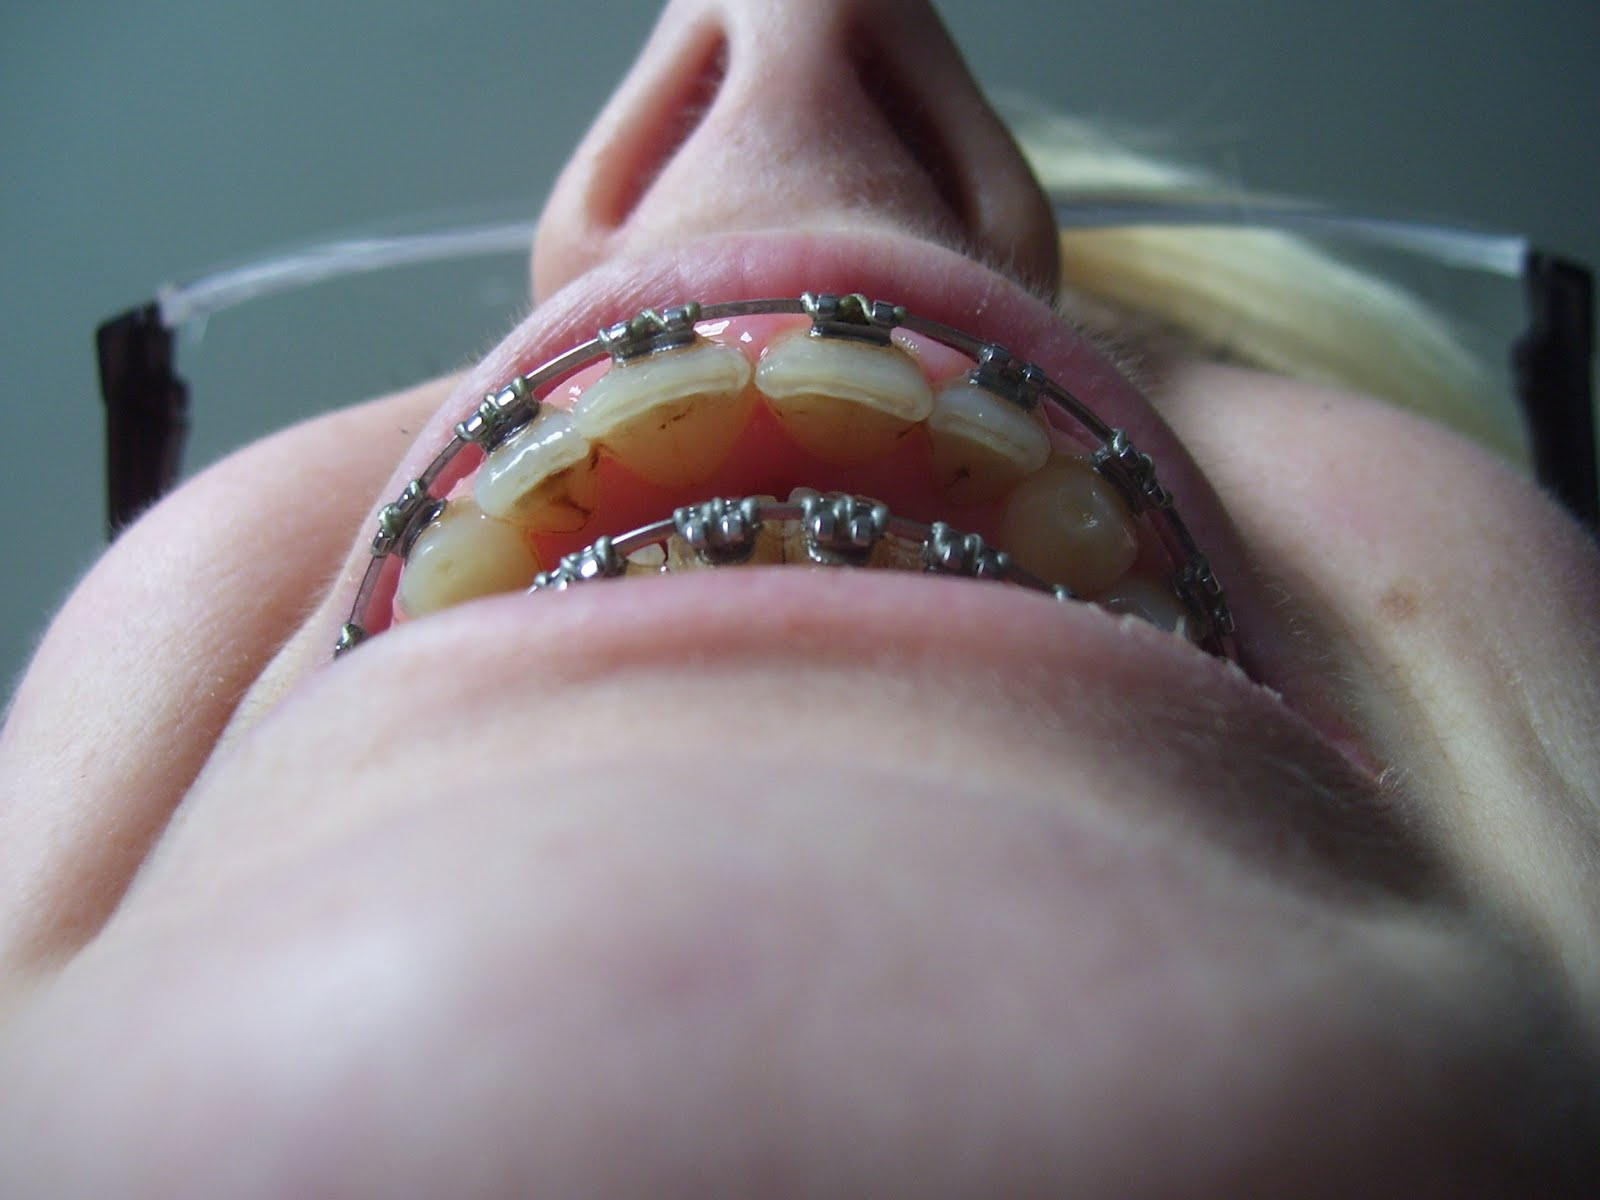 how to avoid stains on teeth from braces